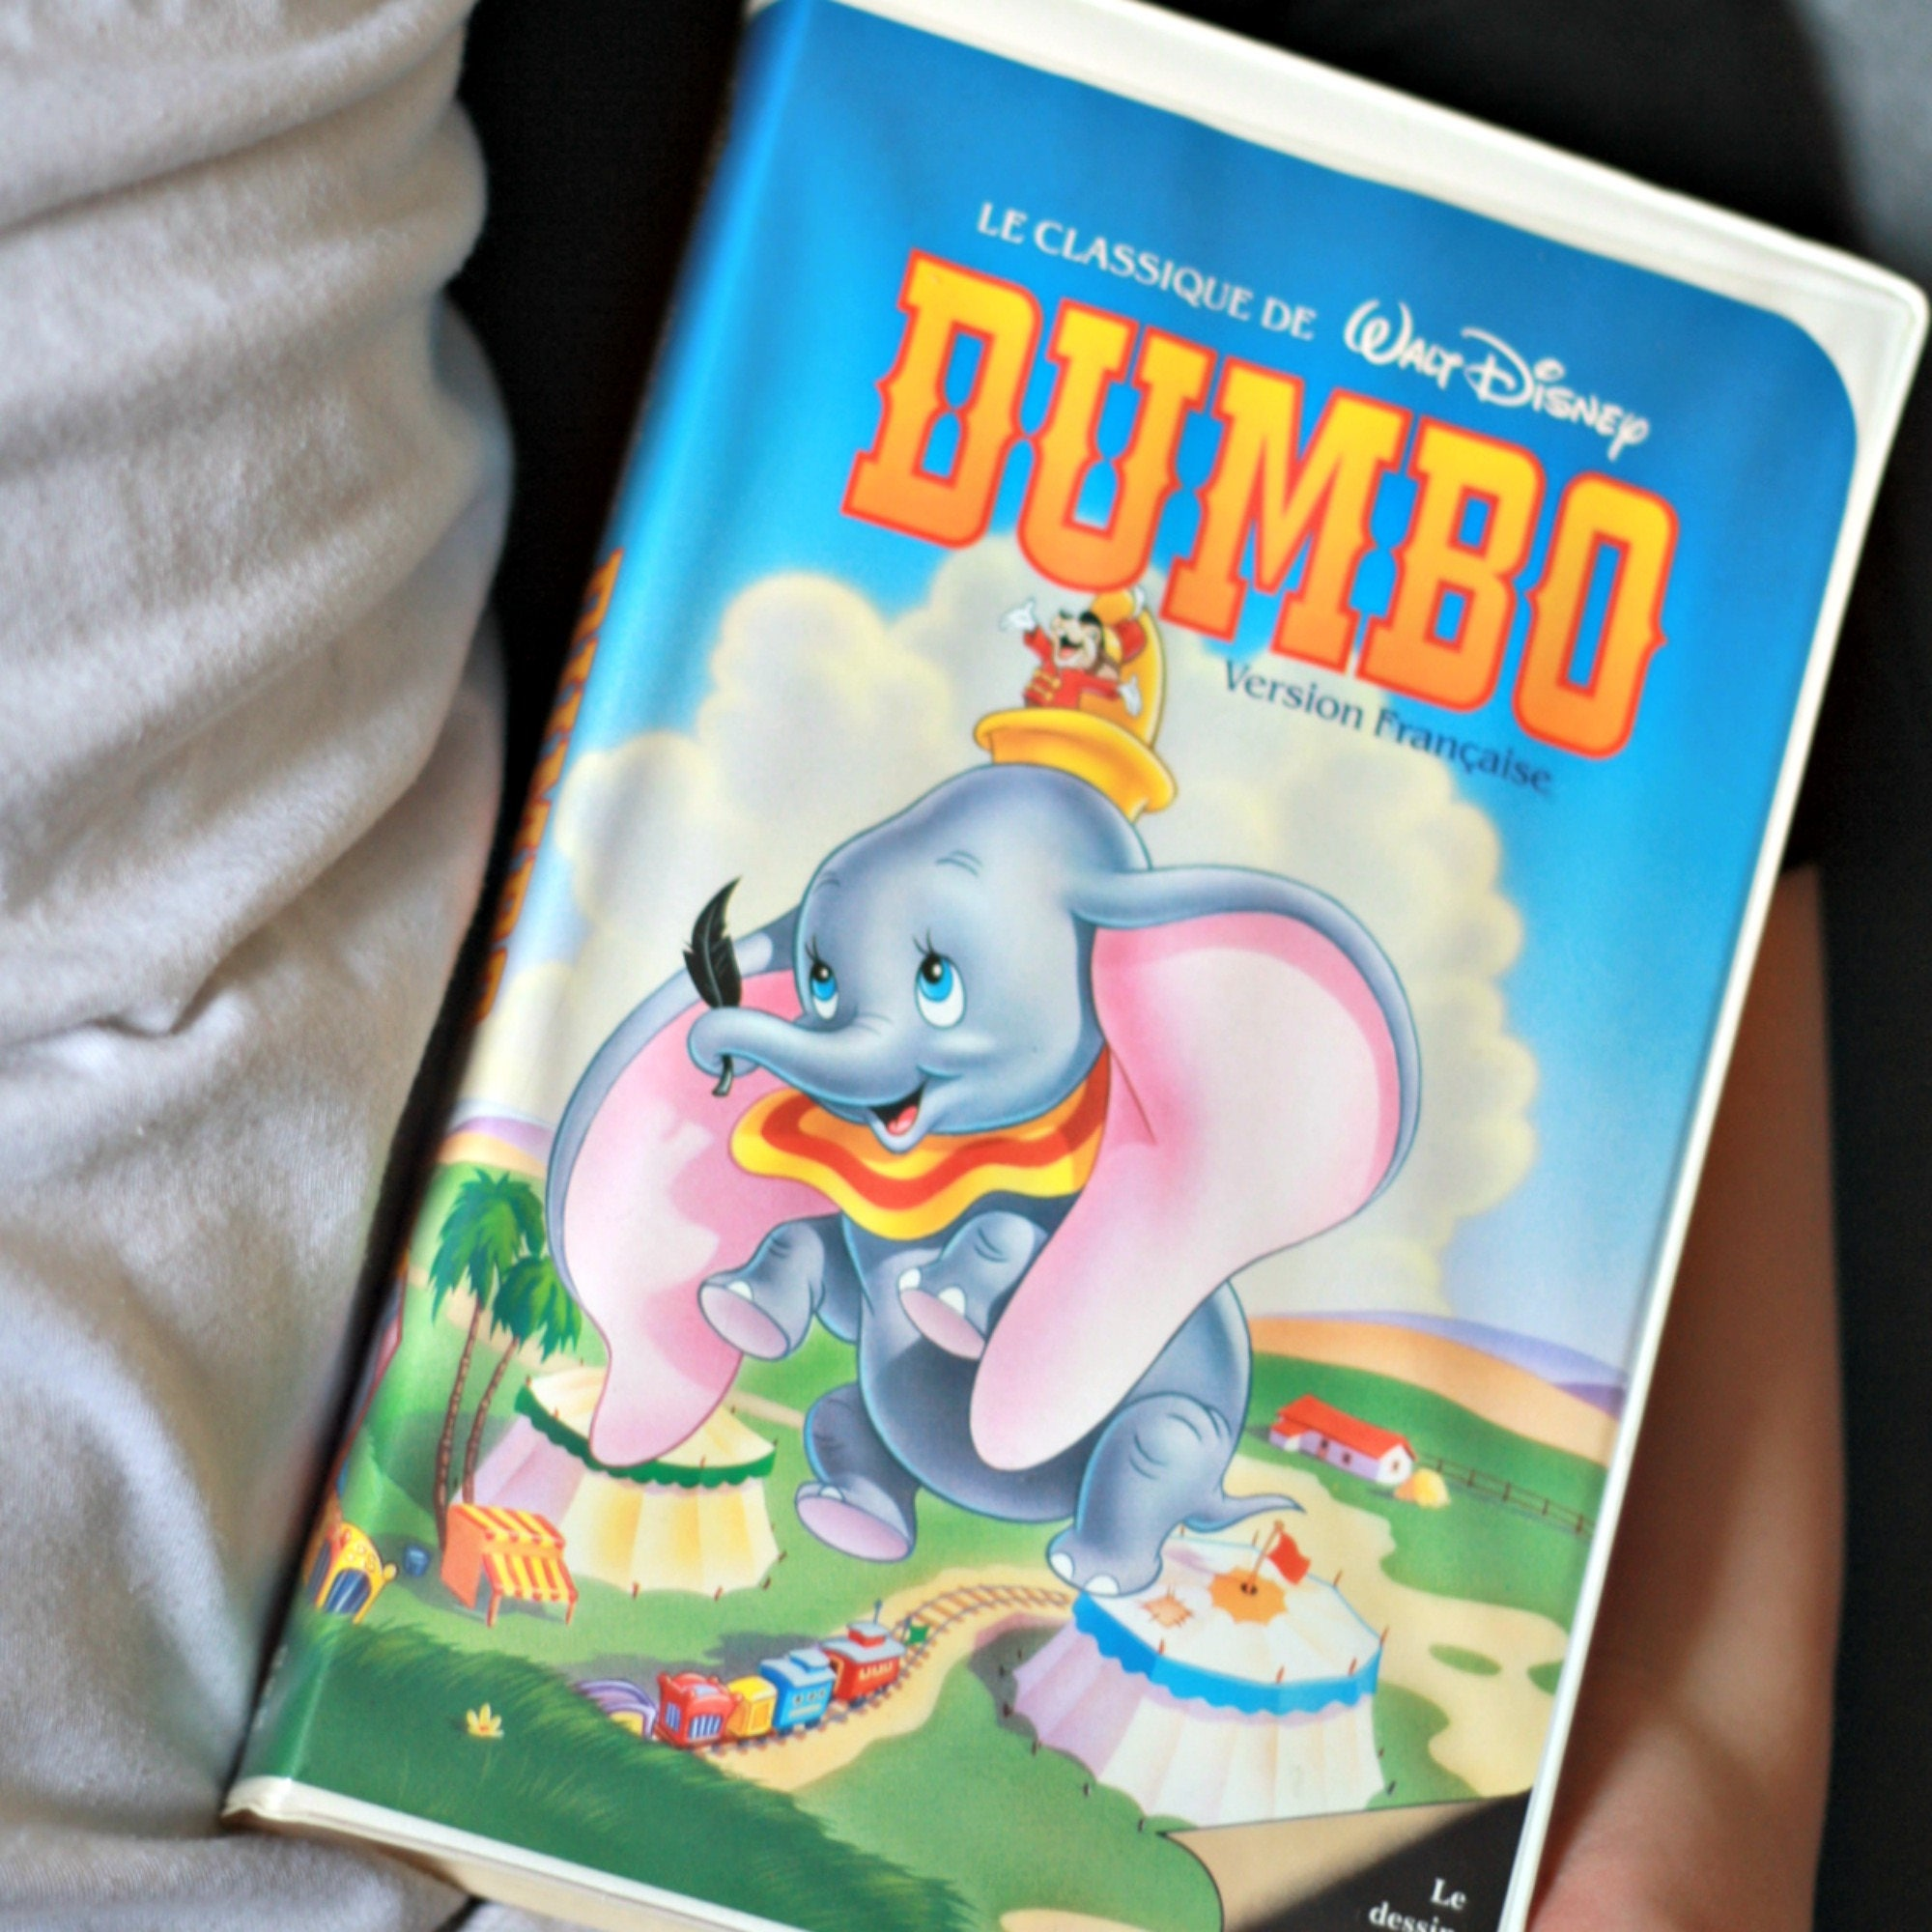 Dumbo movie FRENCH VHS Black Diamond Dumbo Black Diamond | Etsy